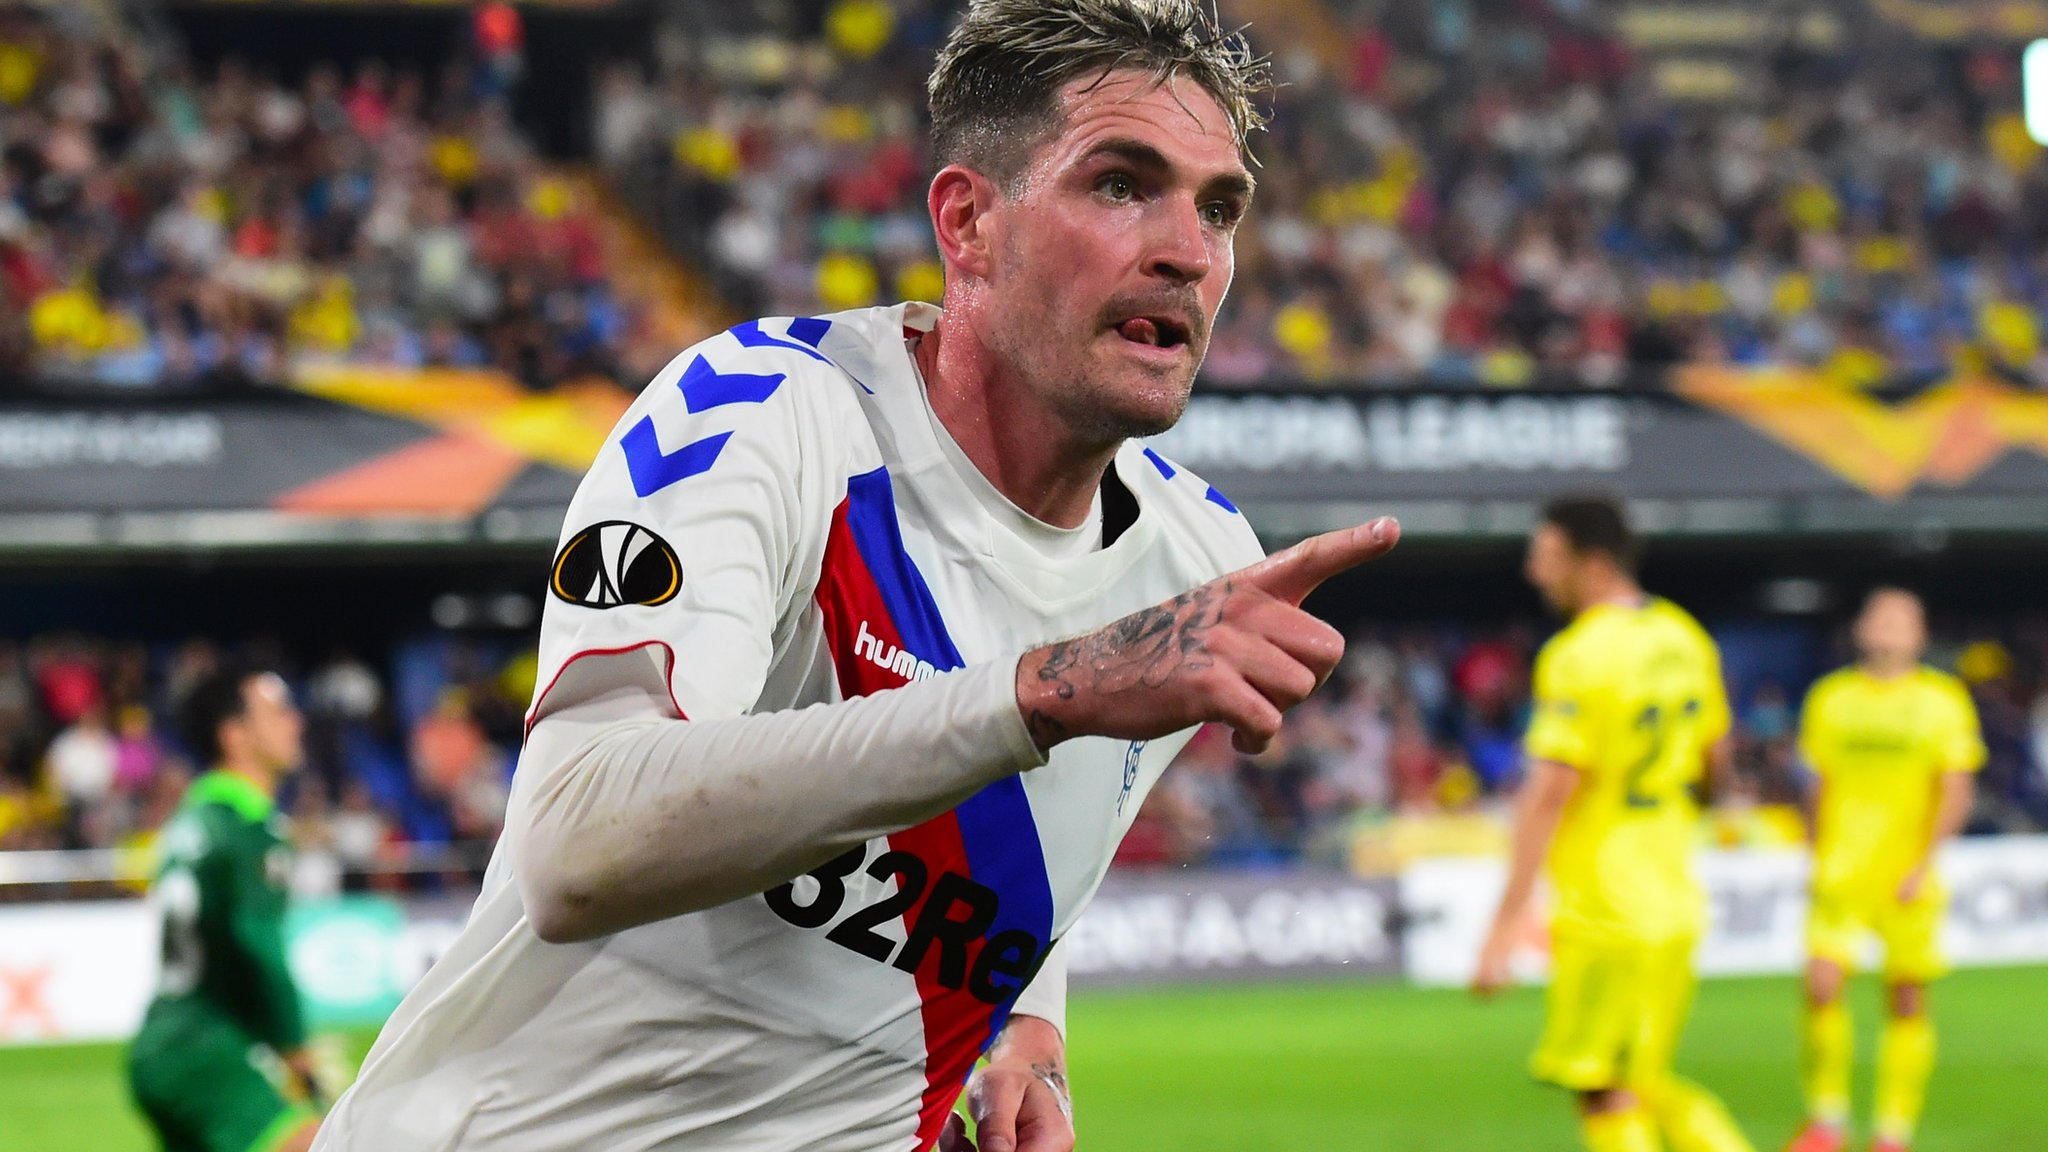 Europa League: Villarreal 2-2 Rangers - Kyle Lafferty gives Gerrard's side a draw